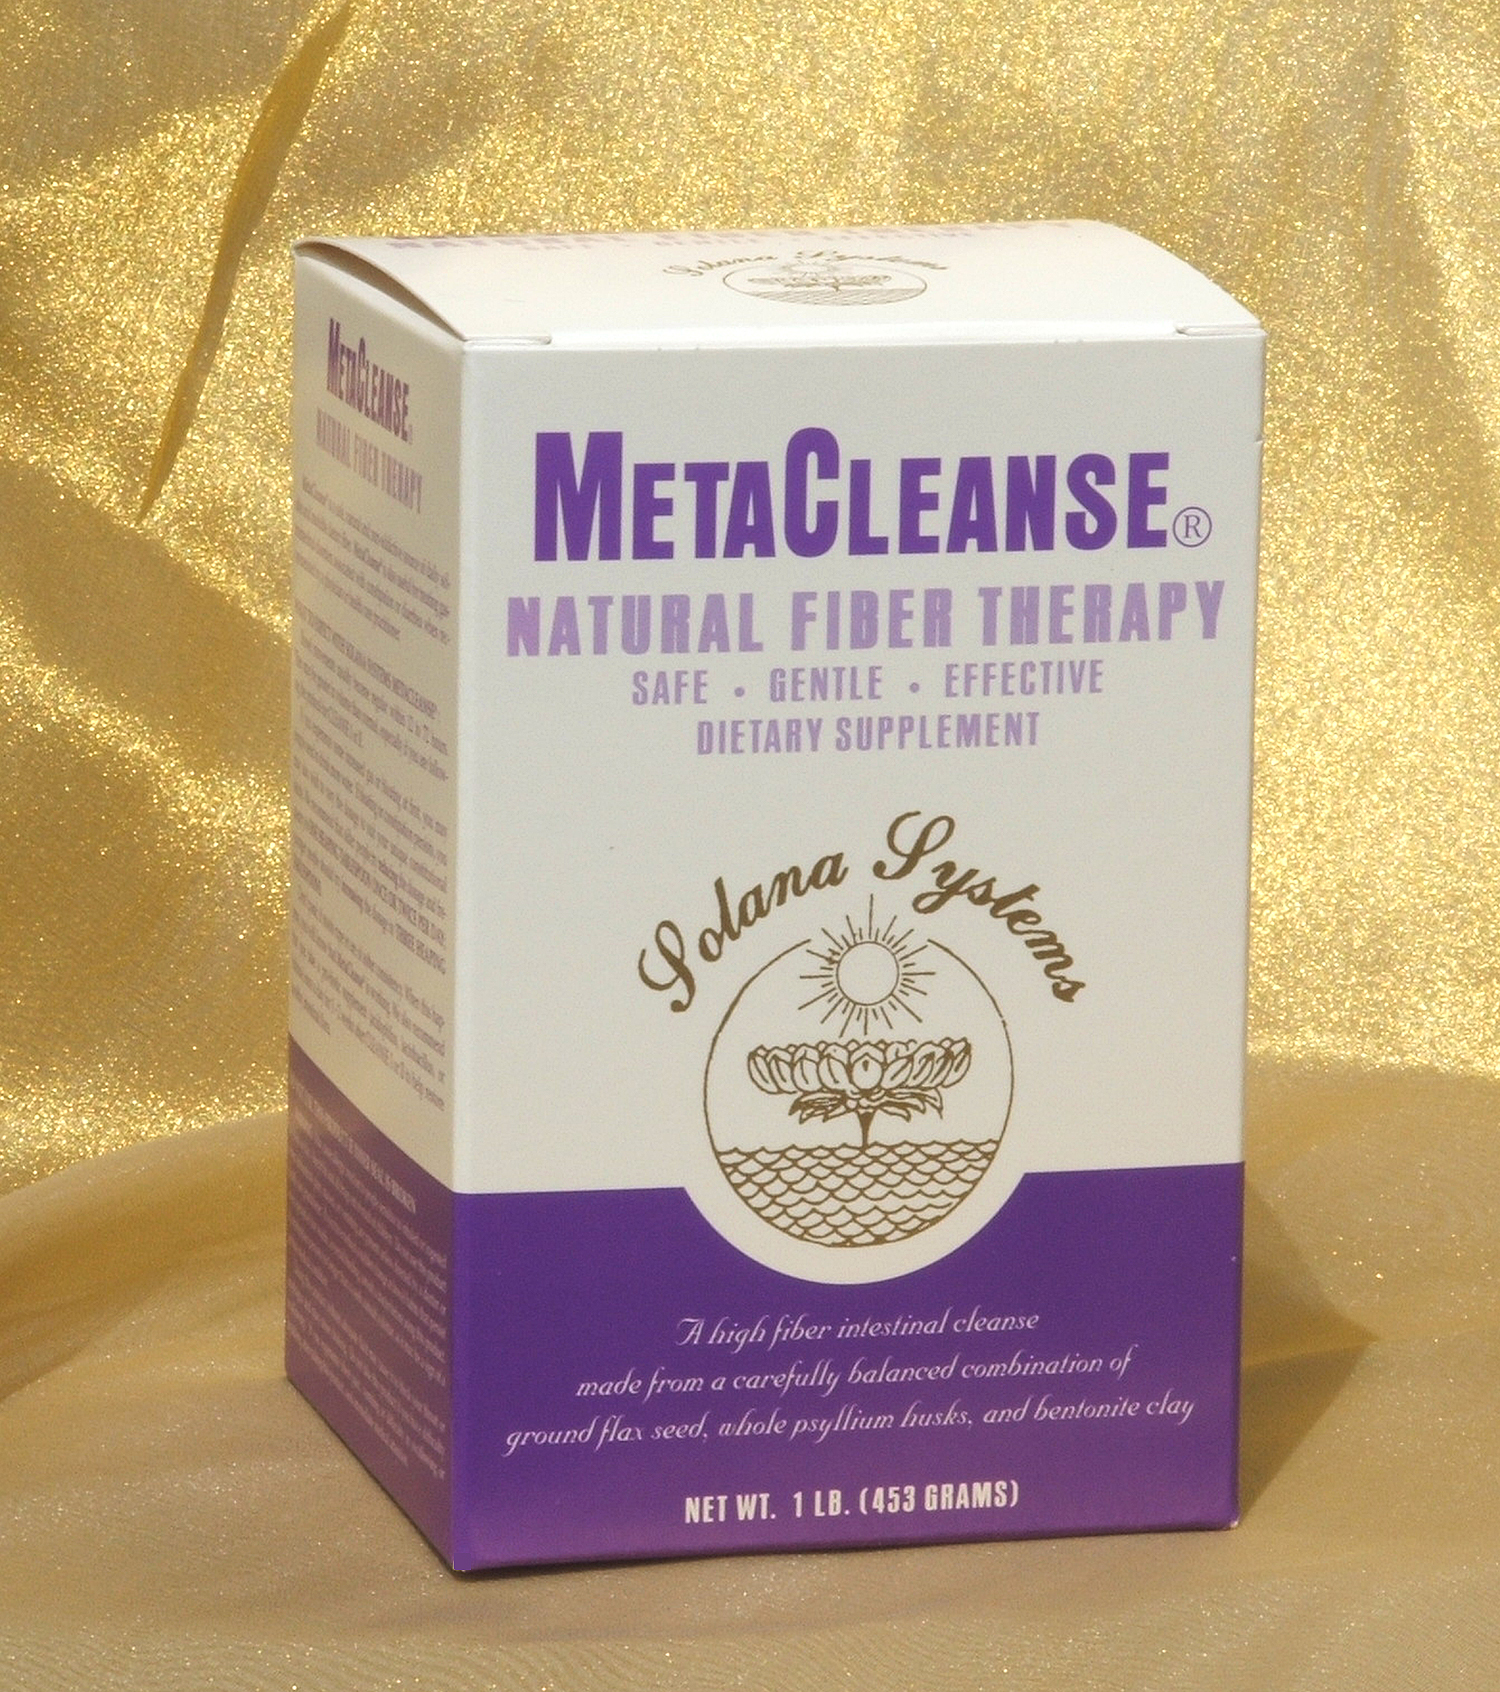 ... Benefits of Colon Cleansing with MetaCleanse Colon Cleanse for